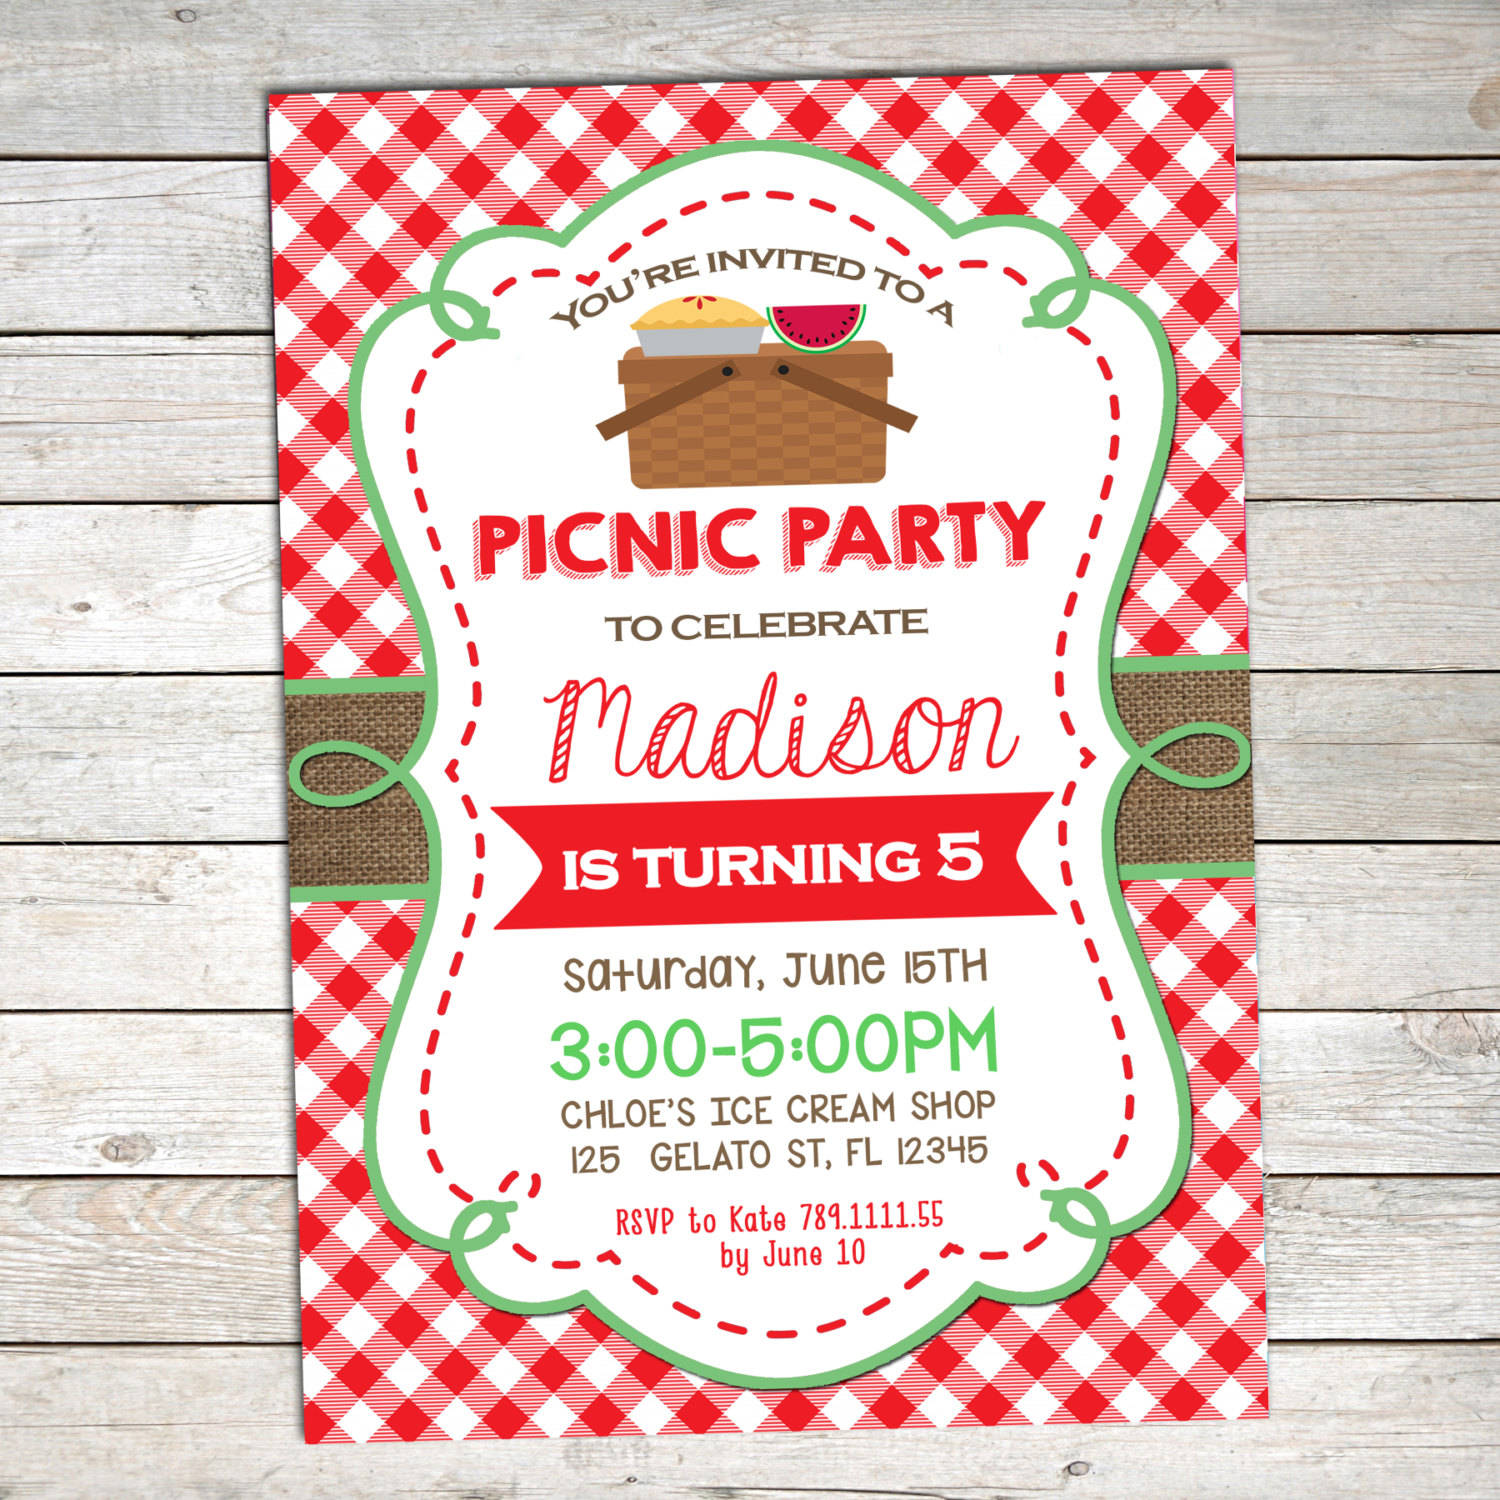 picnic invitation designs examples in